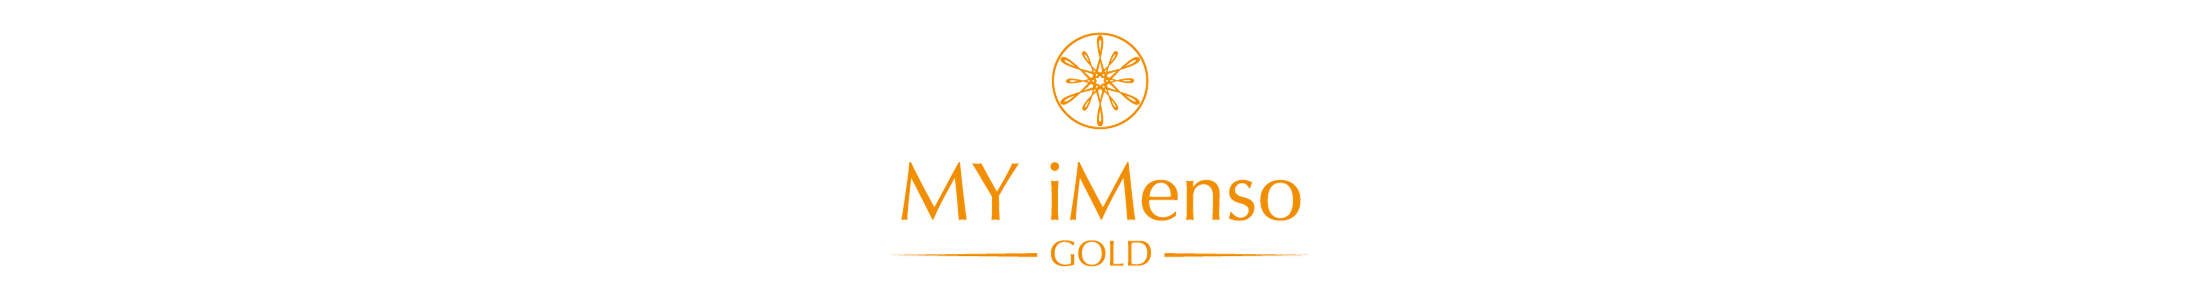 MY iMenso Gold het verwisselbare medaillon systeem